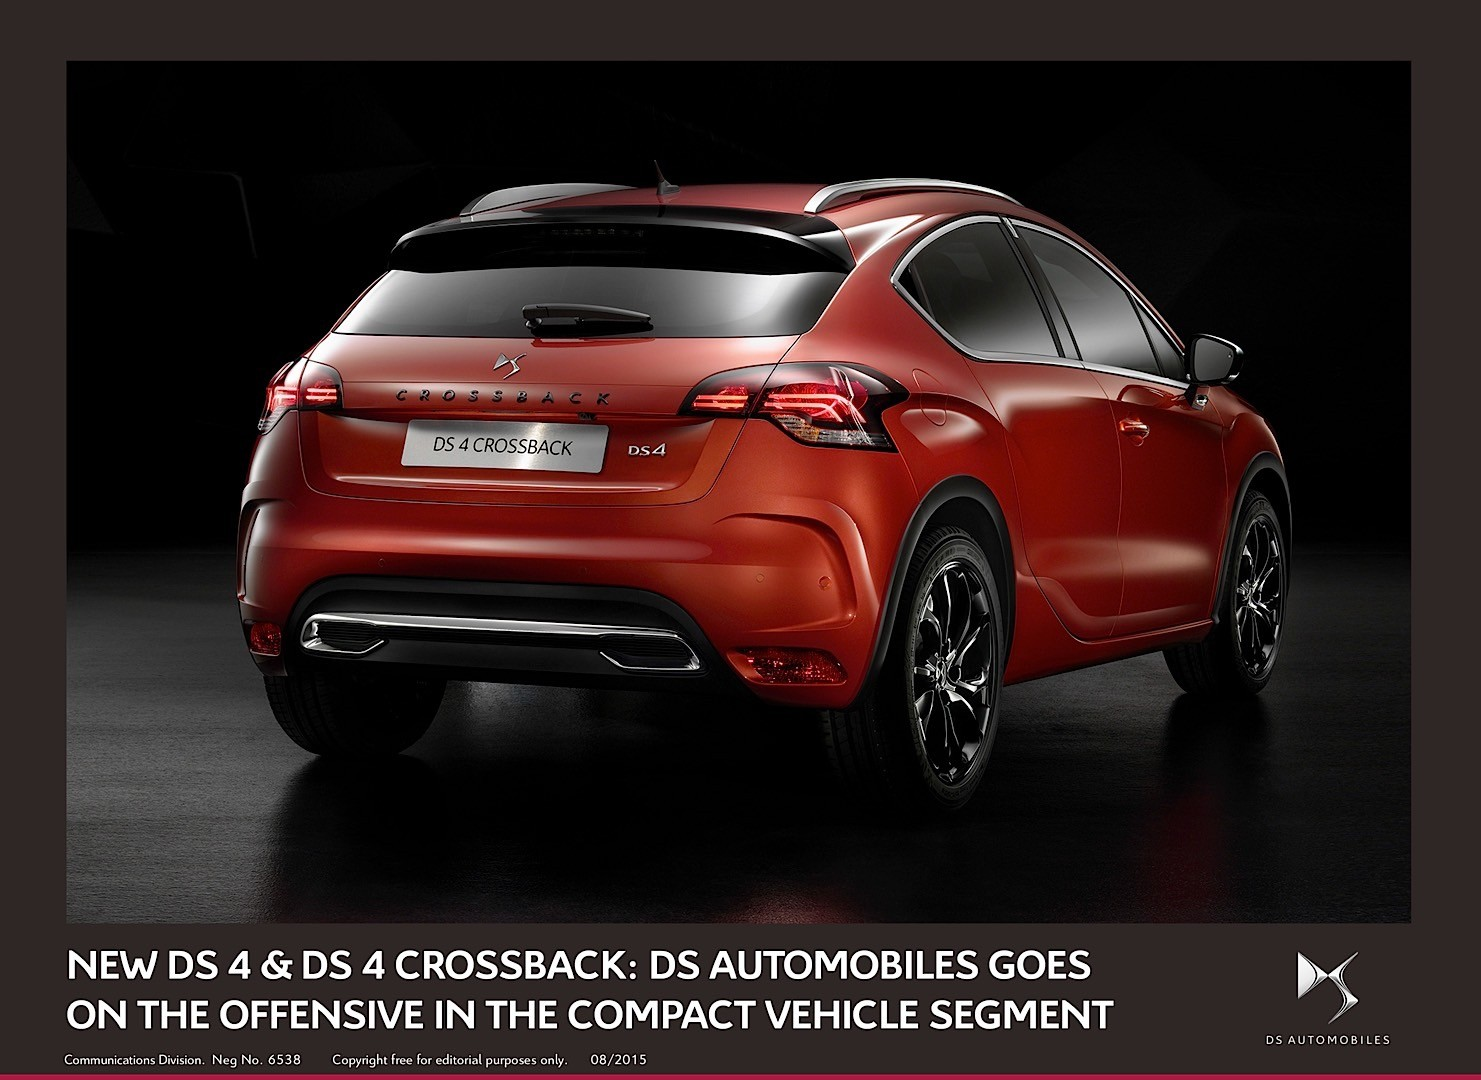 ds reveals facelifted ds4 and ds4 crossback we 39 ll see them in frankfurt autoevolution. Black Bedroom Furniture Sets. Home Design Ideas